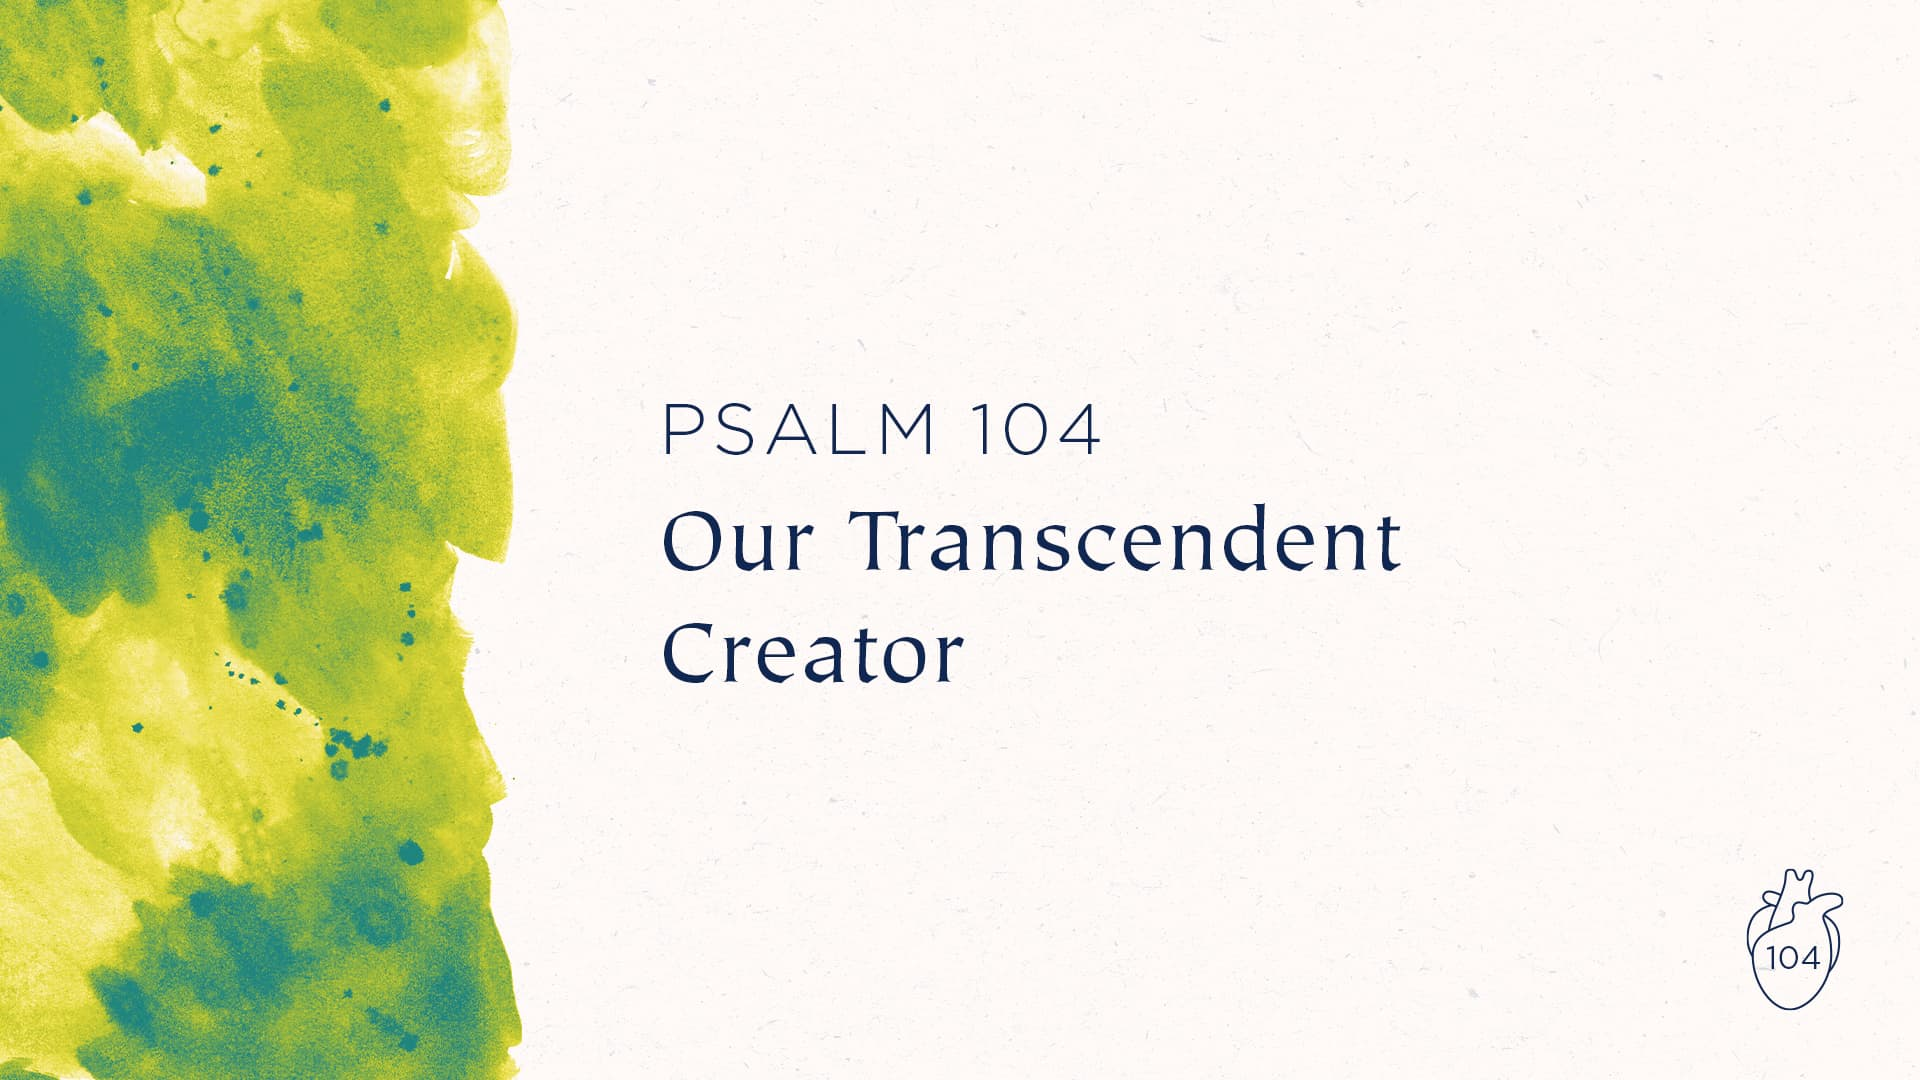 Our Transcendent Creator